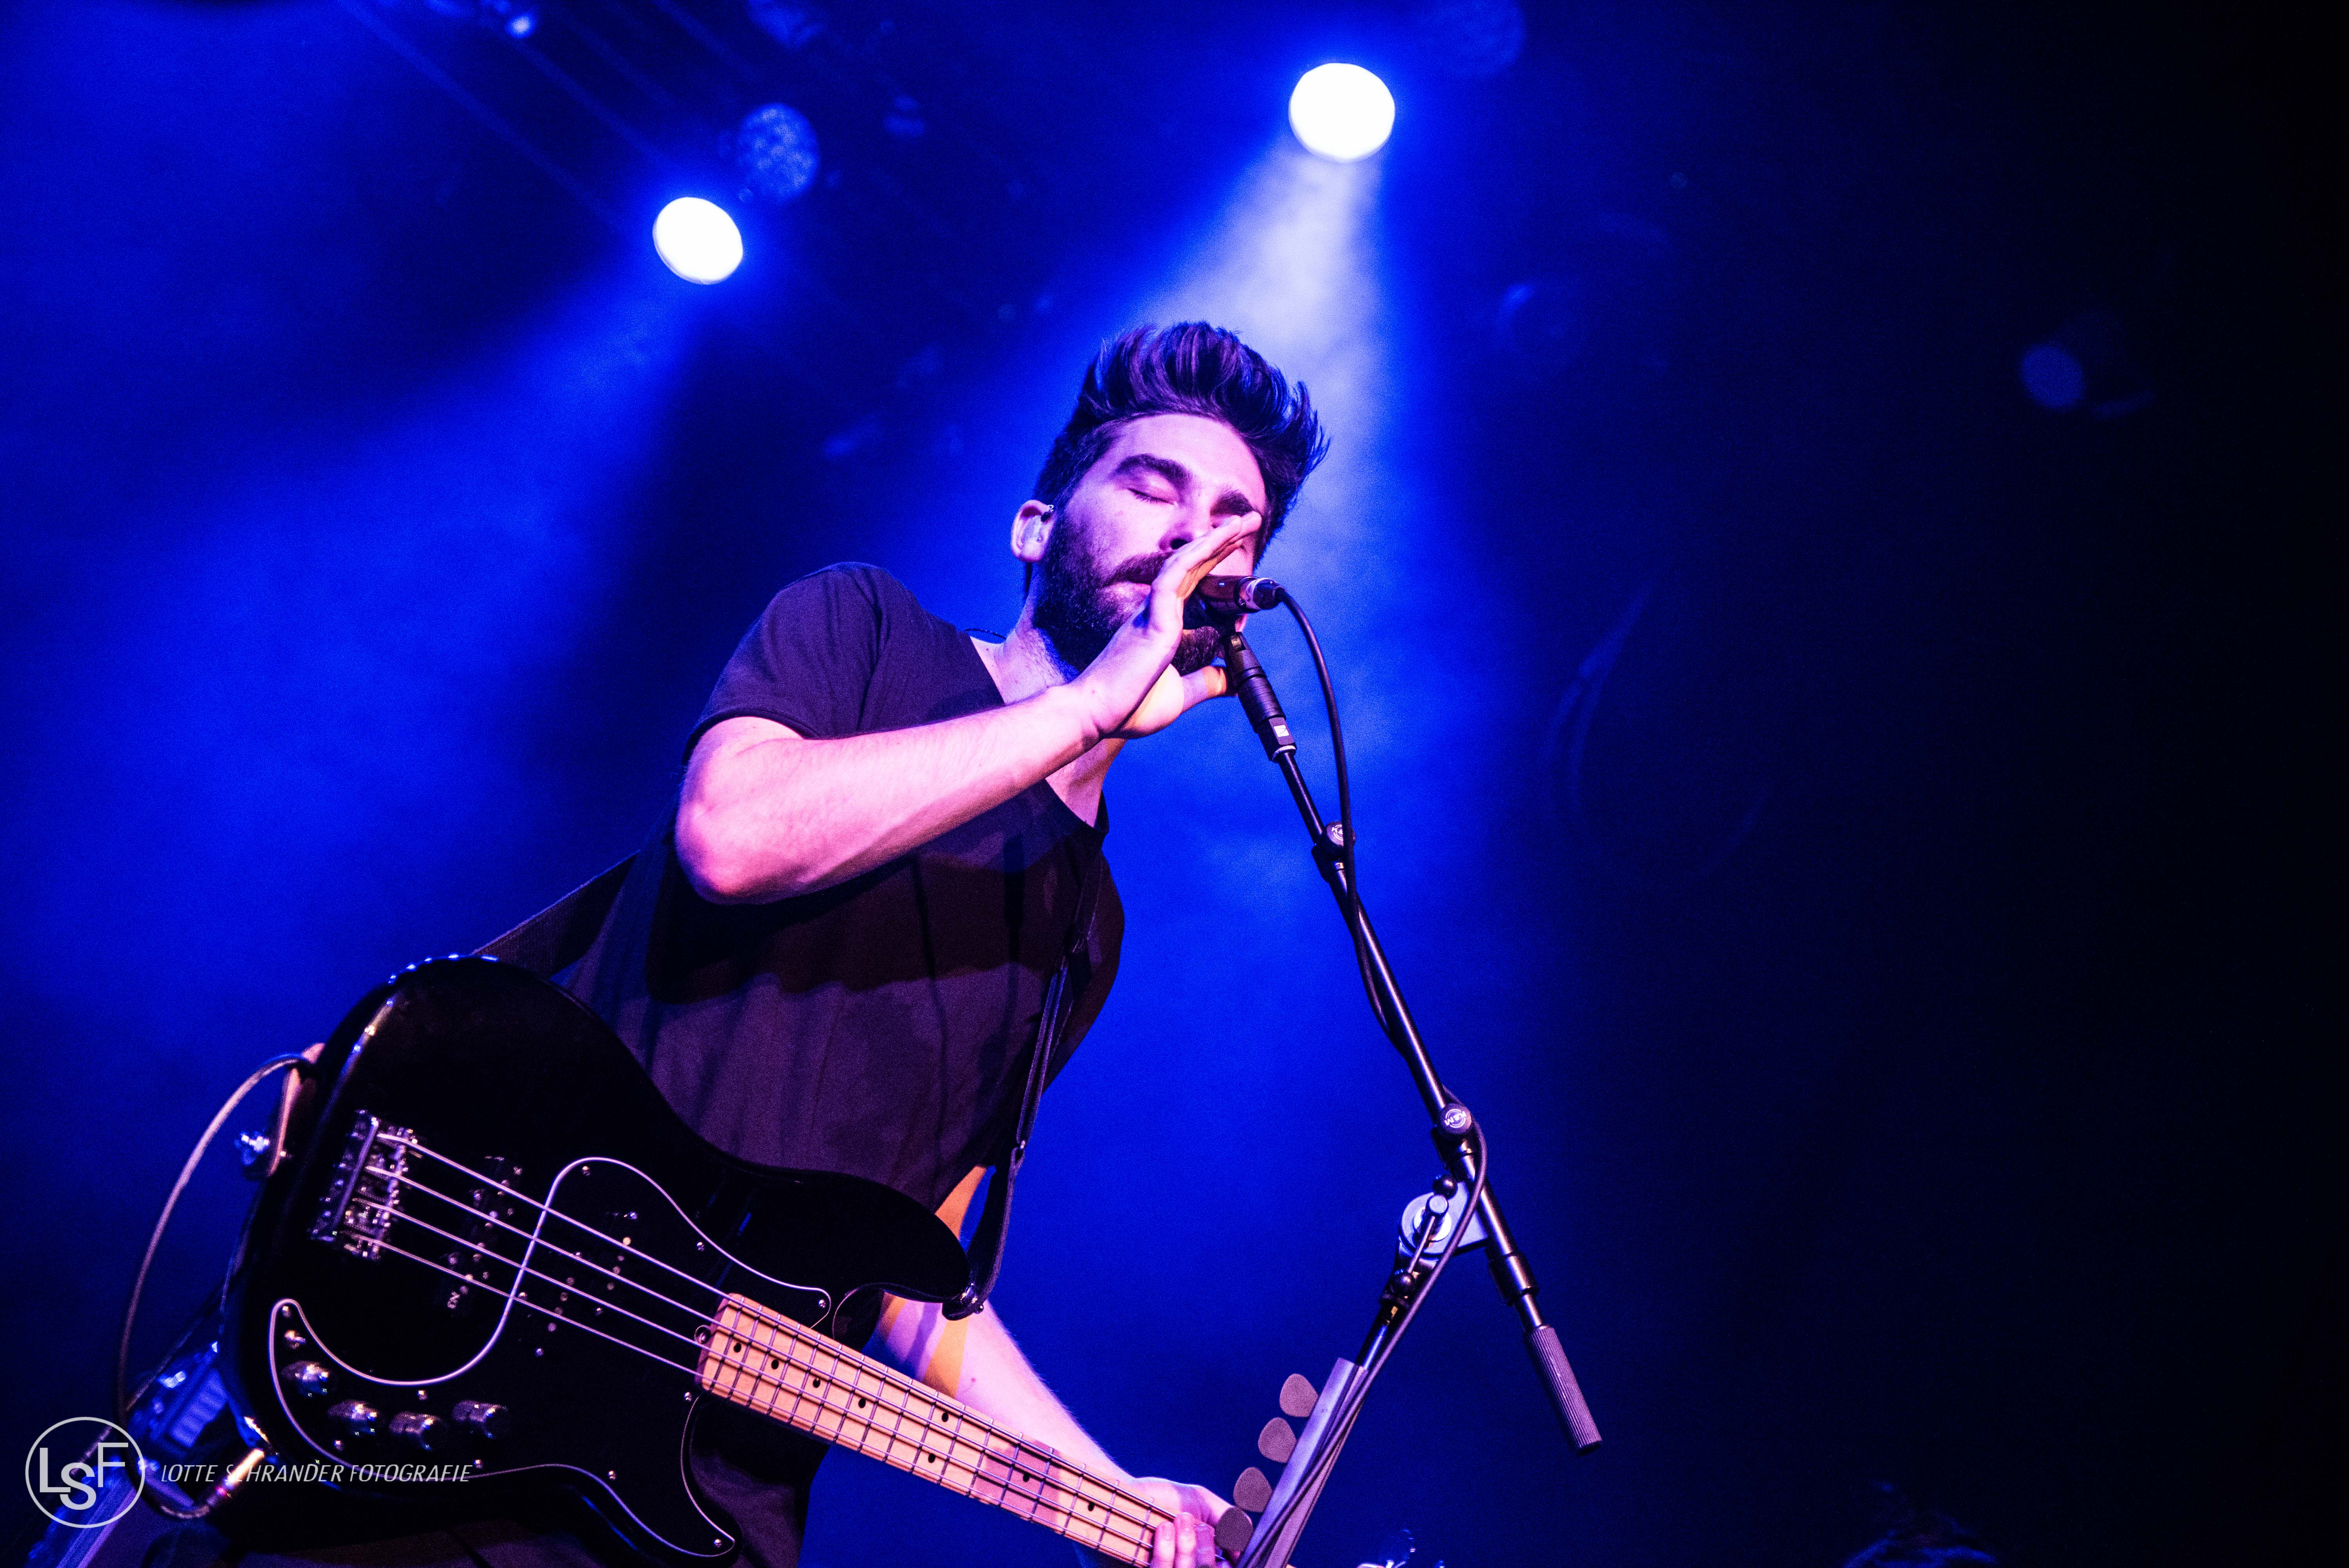 You Me At Six live in Tilburg. (c) Lotte Schrander